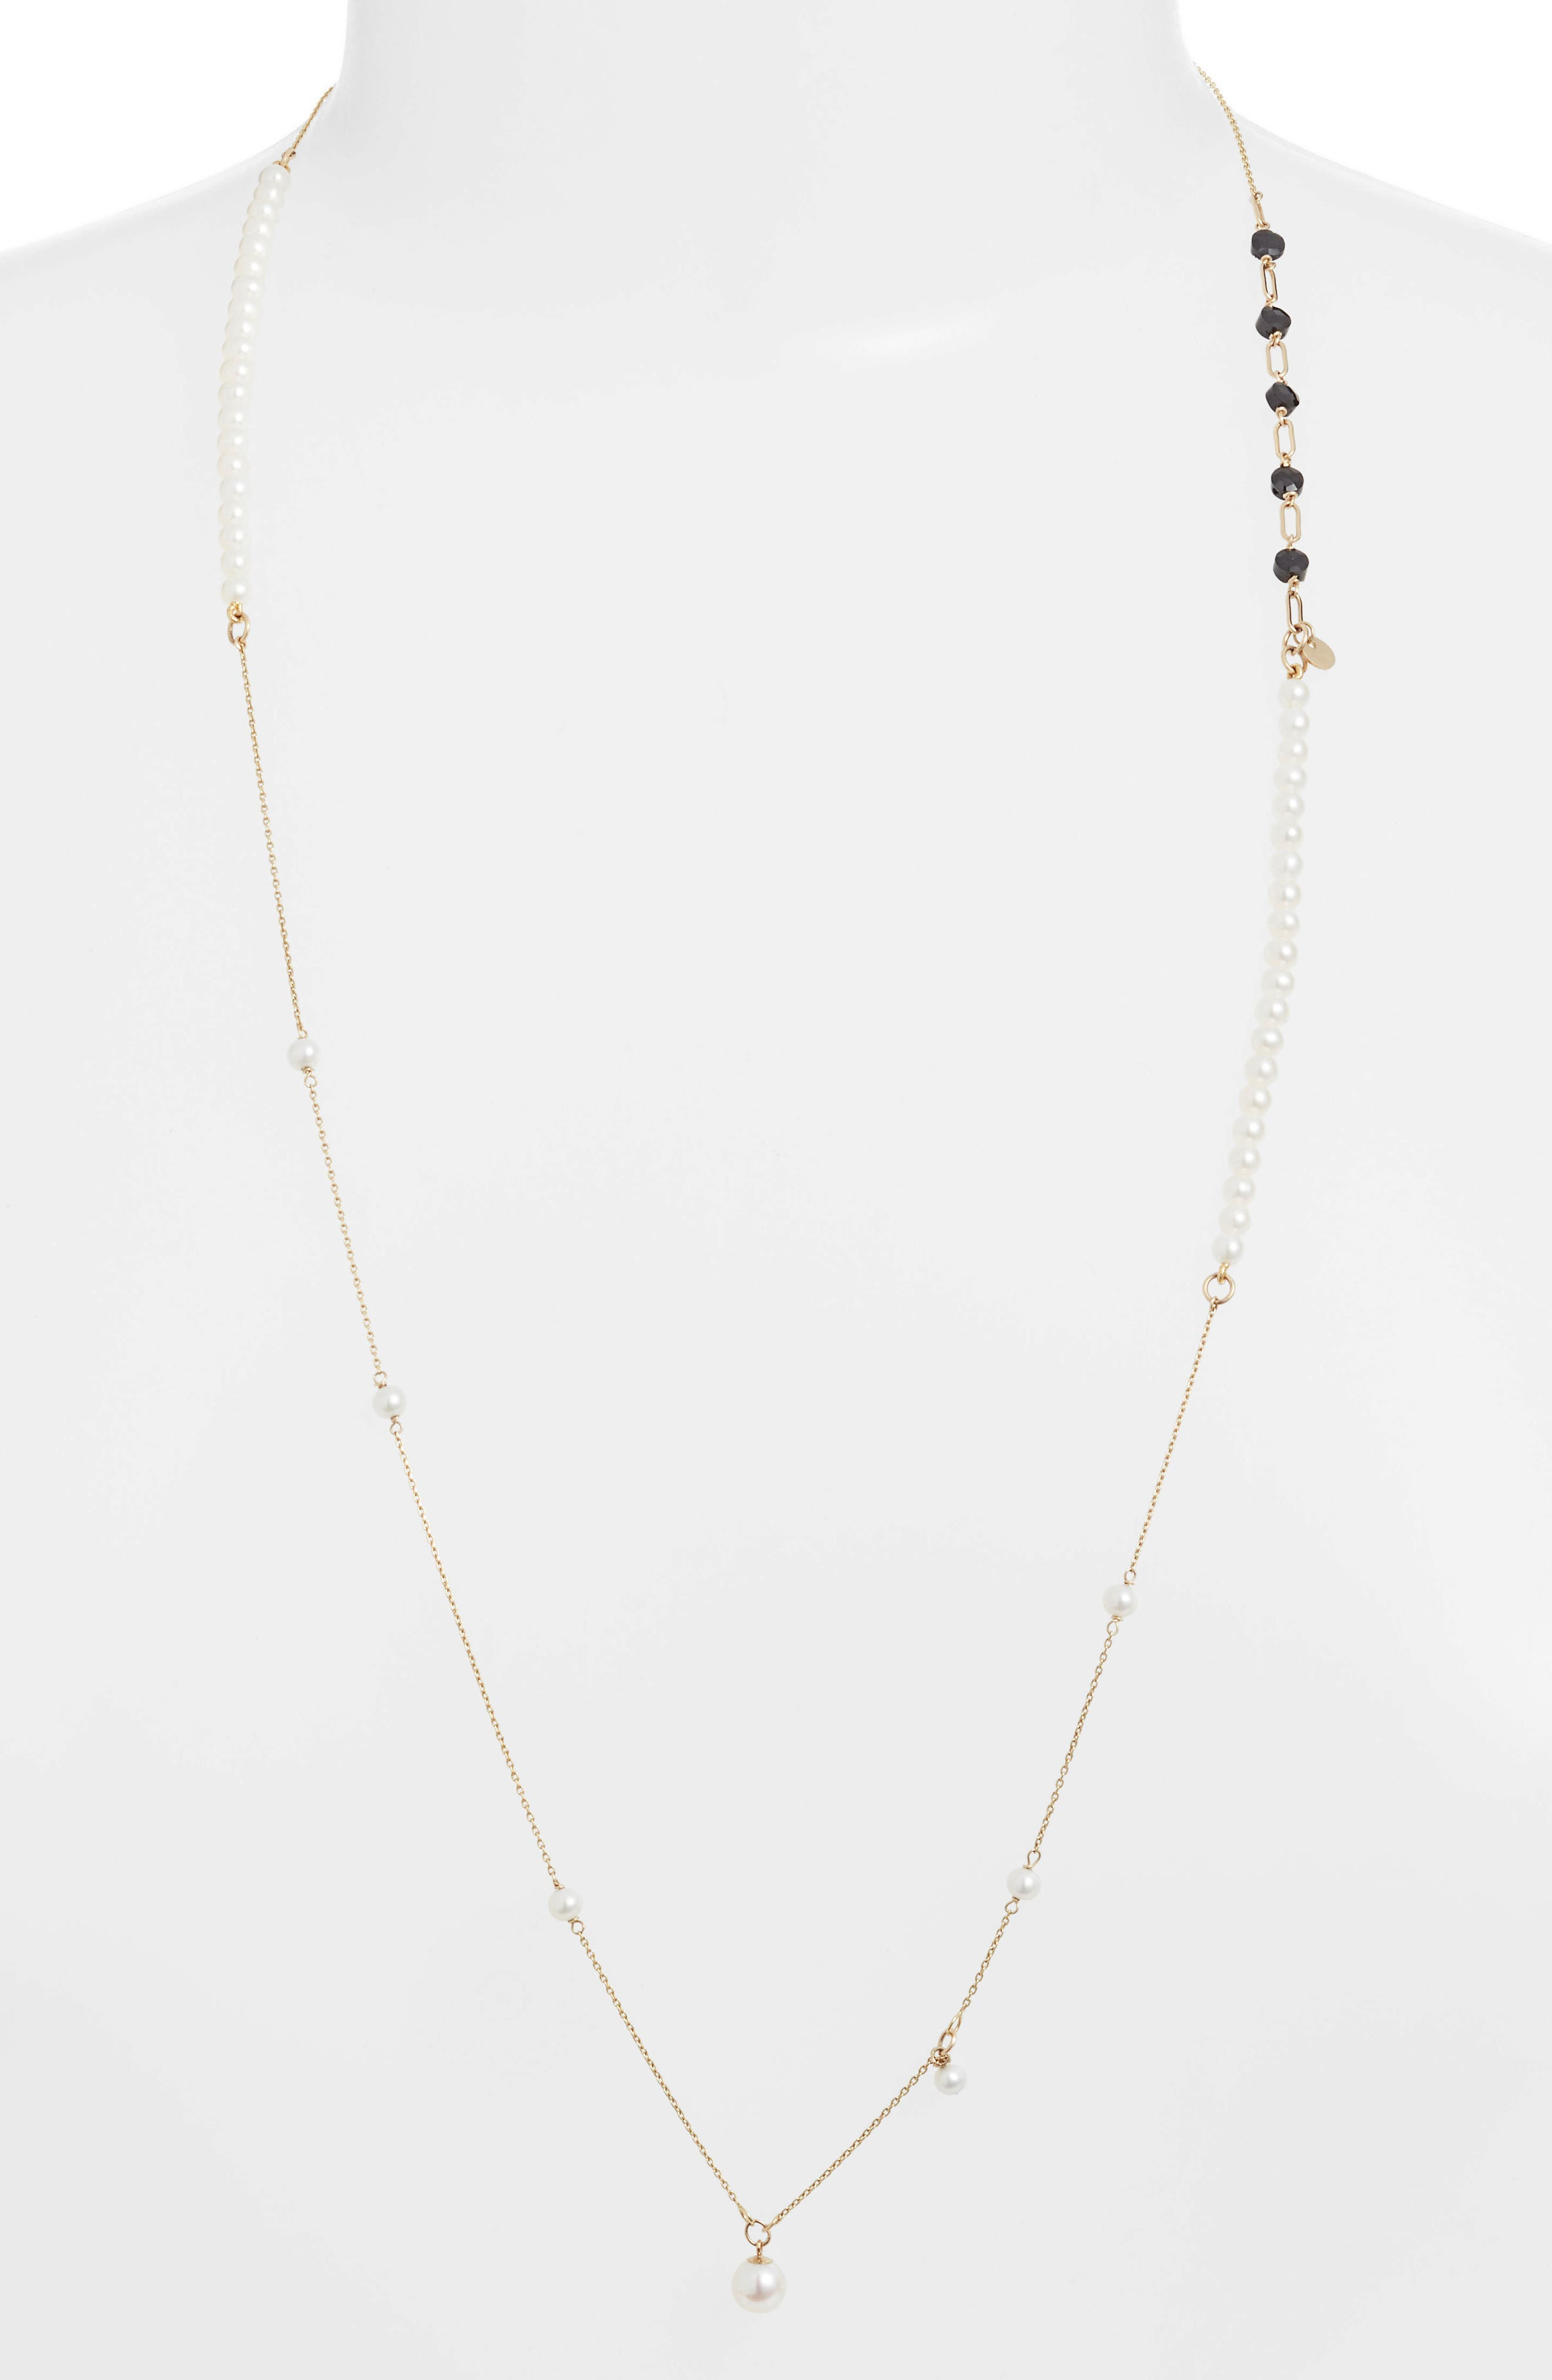 Pearl & Onyx Necklace,                             Main thumbnail 1, color,                             YELLOW GOLD/ PEARL